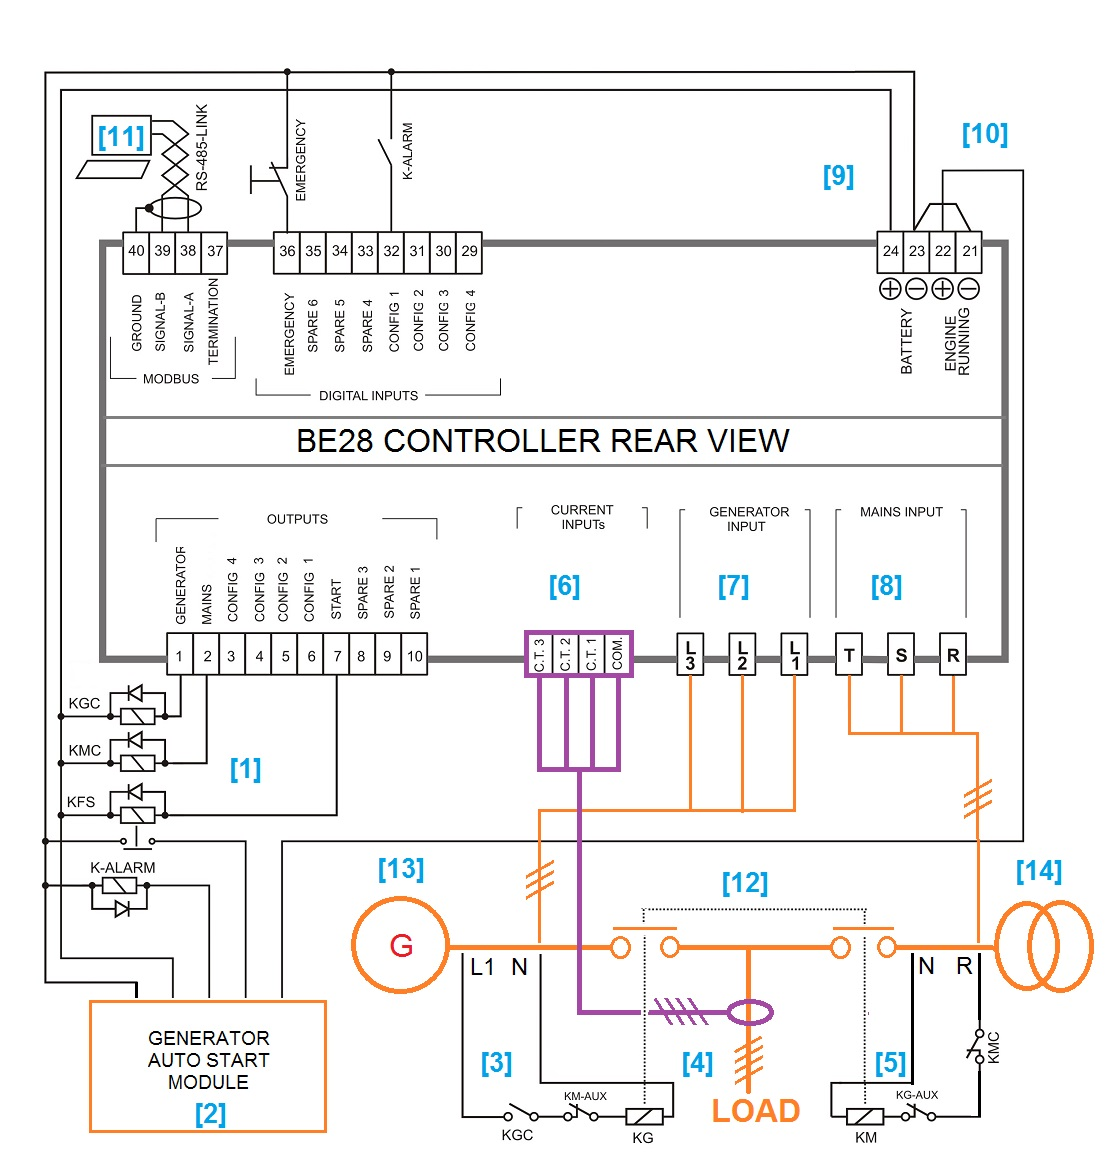 Generac Ats Wiring Diagram from secureservercdn.net